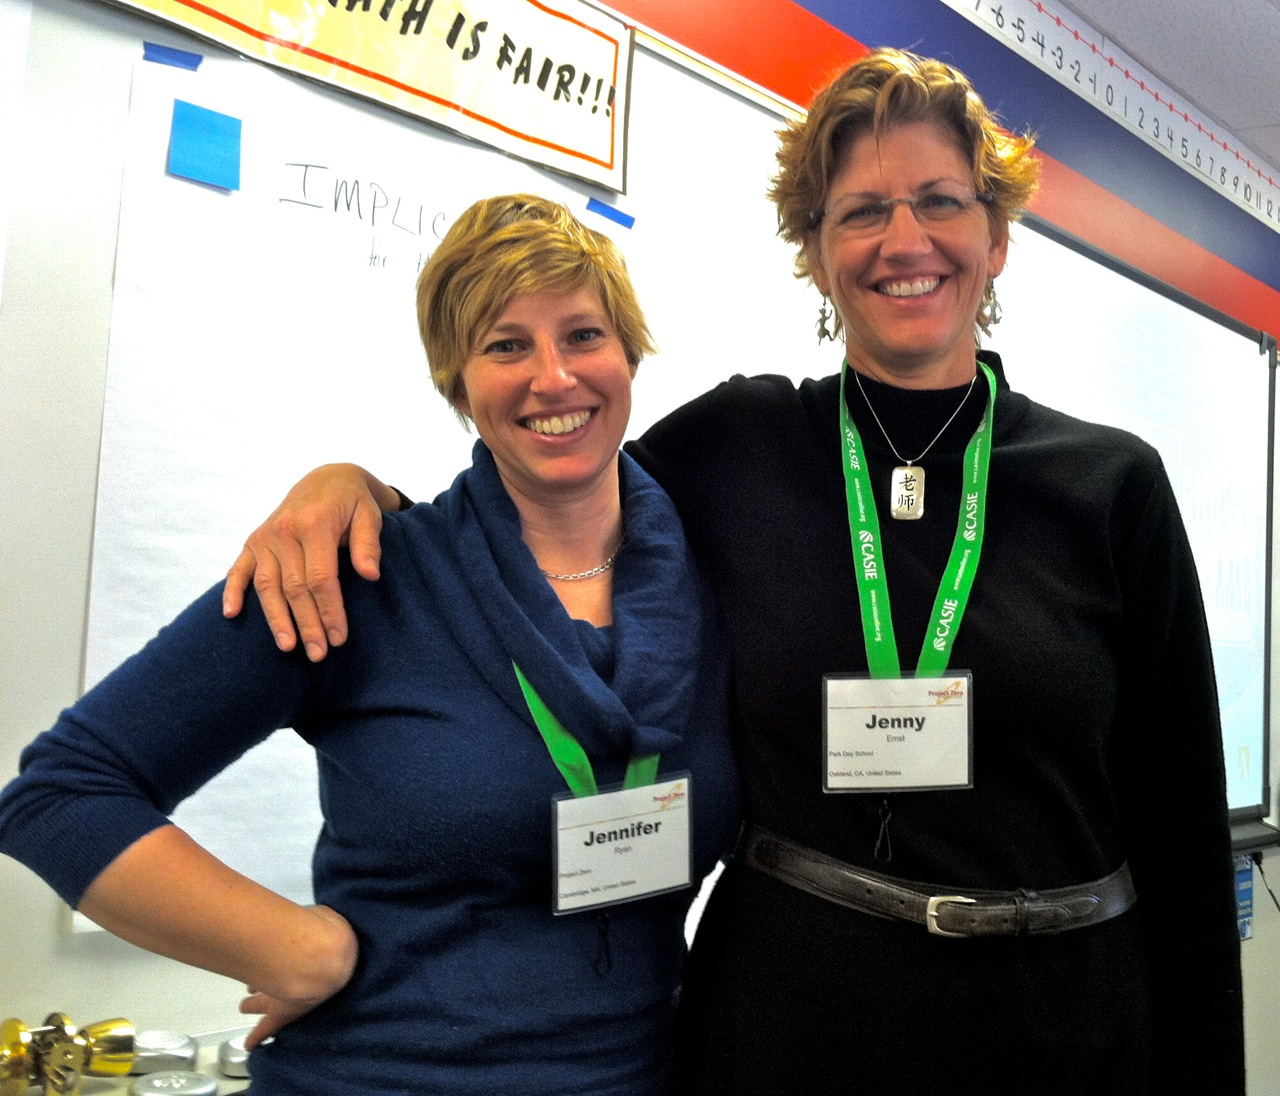 AbD Project Manager Jen Ryan And Park Day School Teacher OLC Member Jenny Ernst Co